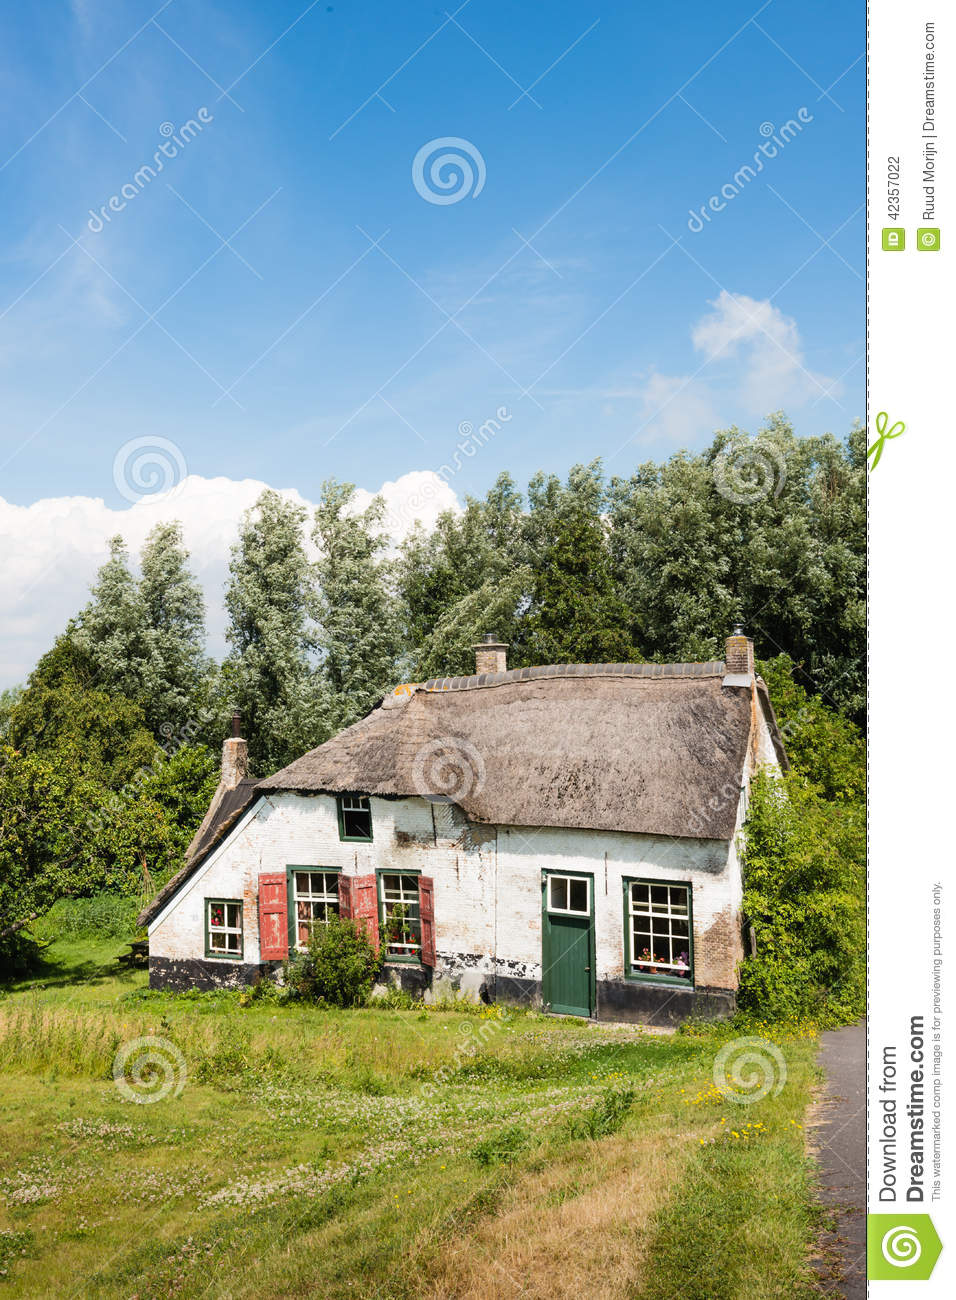 Old abandoned farm house with thatched roof stock photo for Farm house netherlands